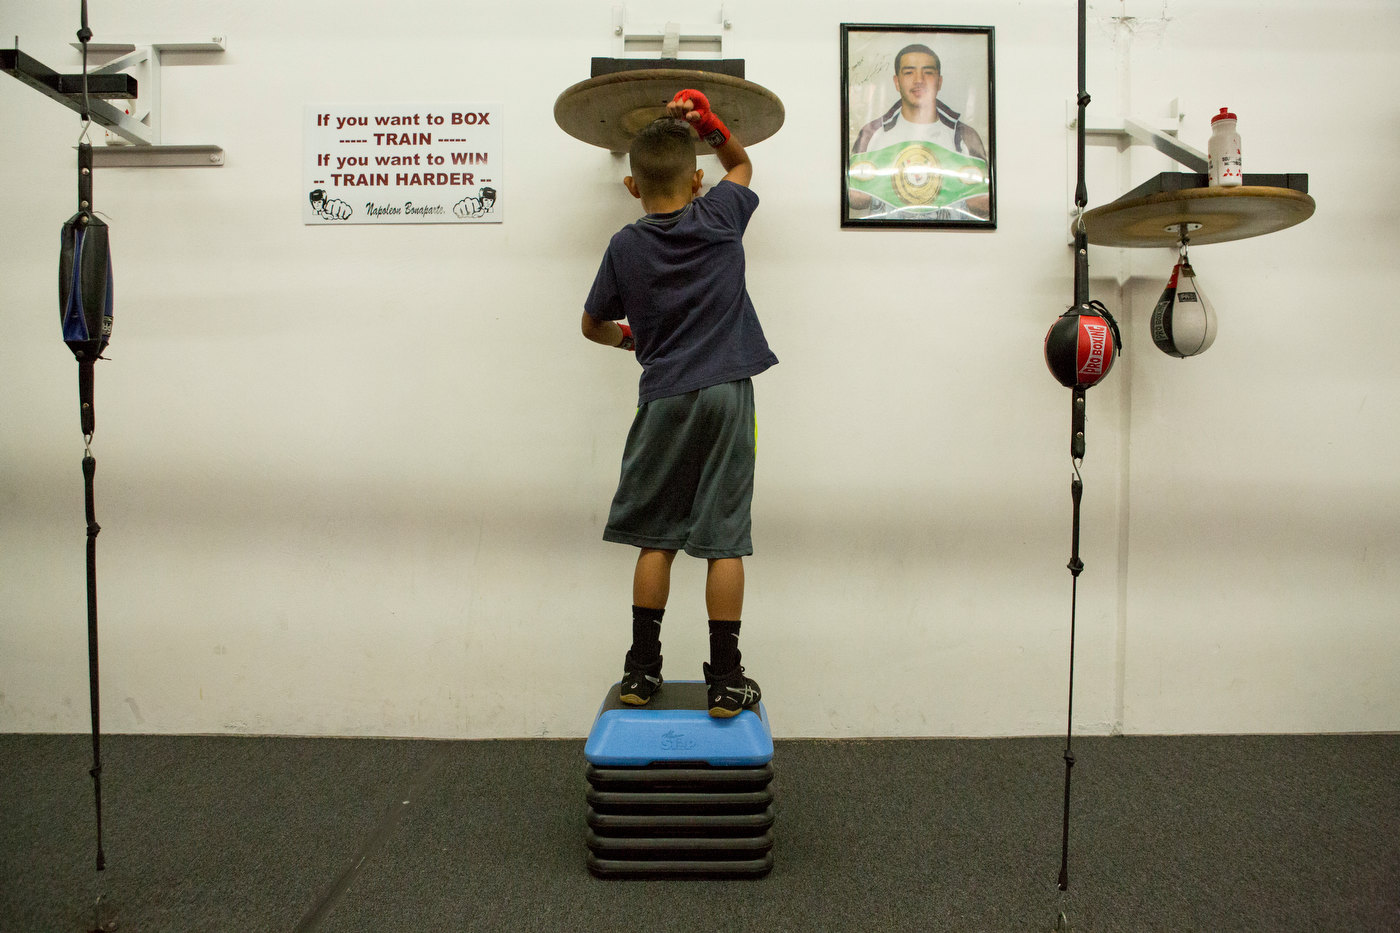 A young boxer trains at the Robert Garcia Boxing Academy in Oxnard, California.